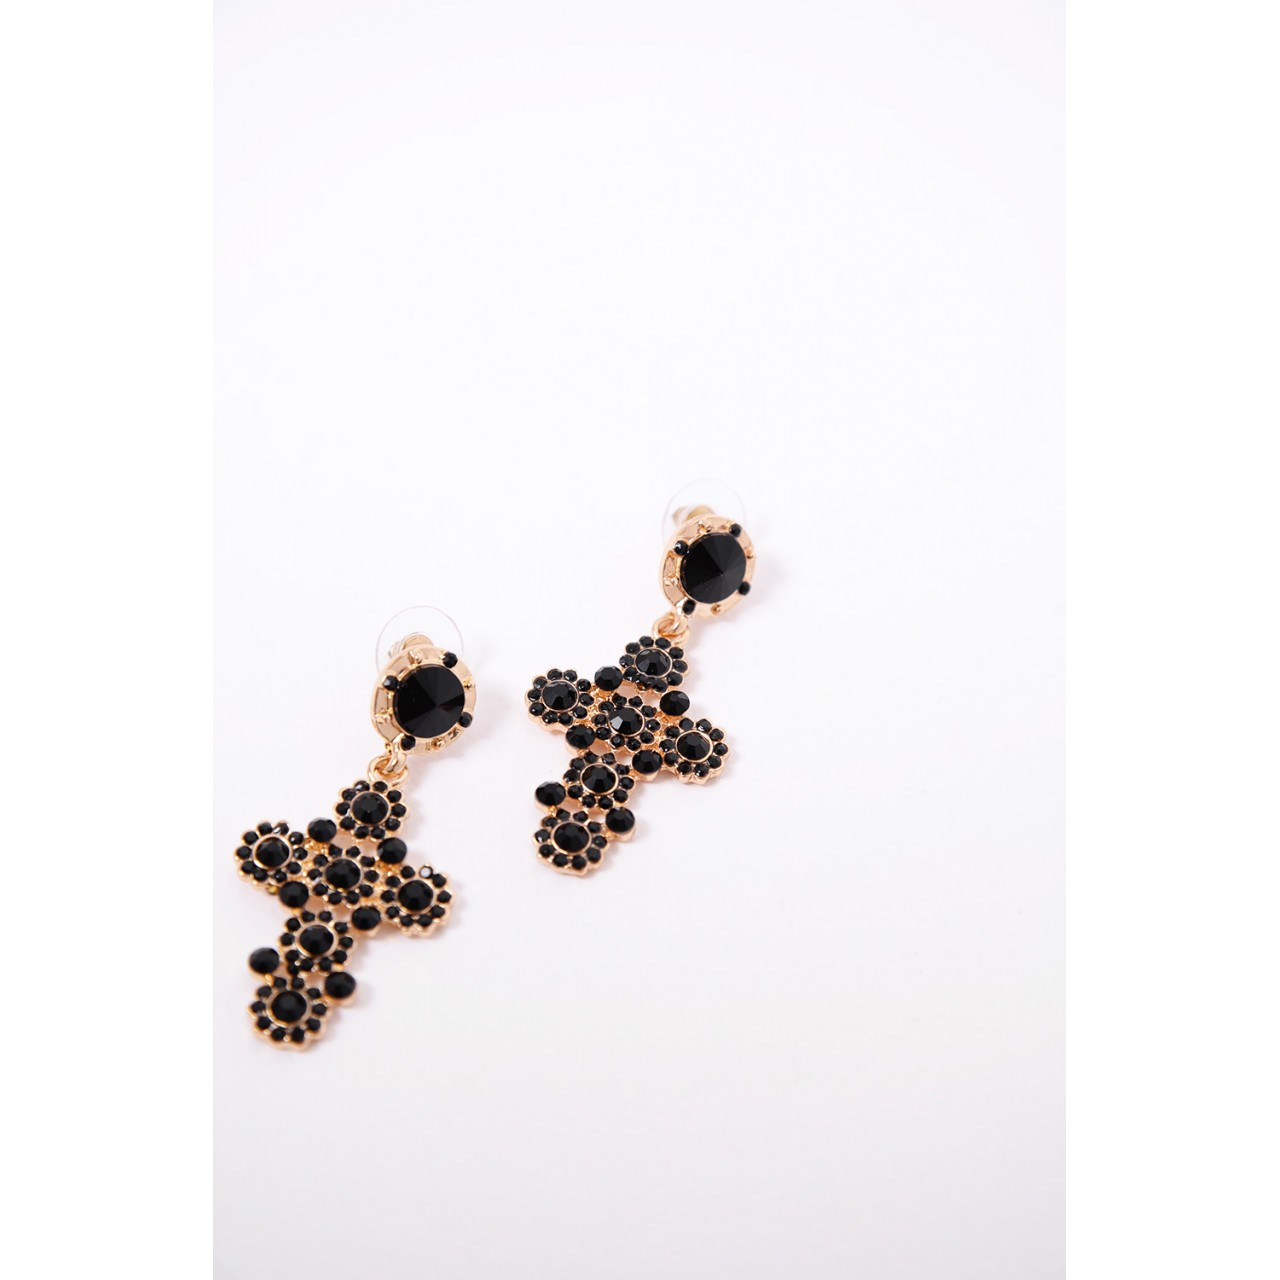 Cross earings with strass